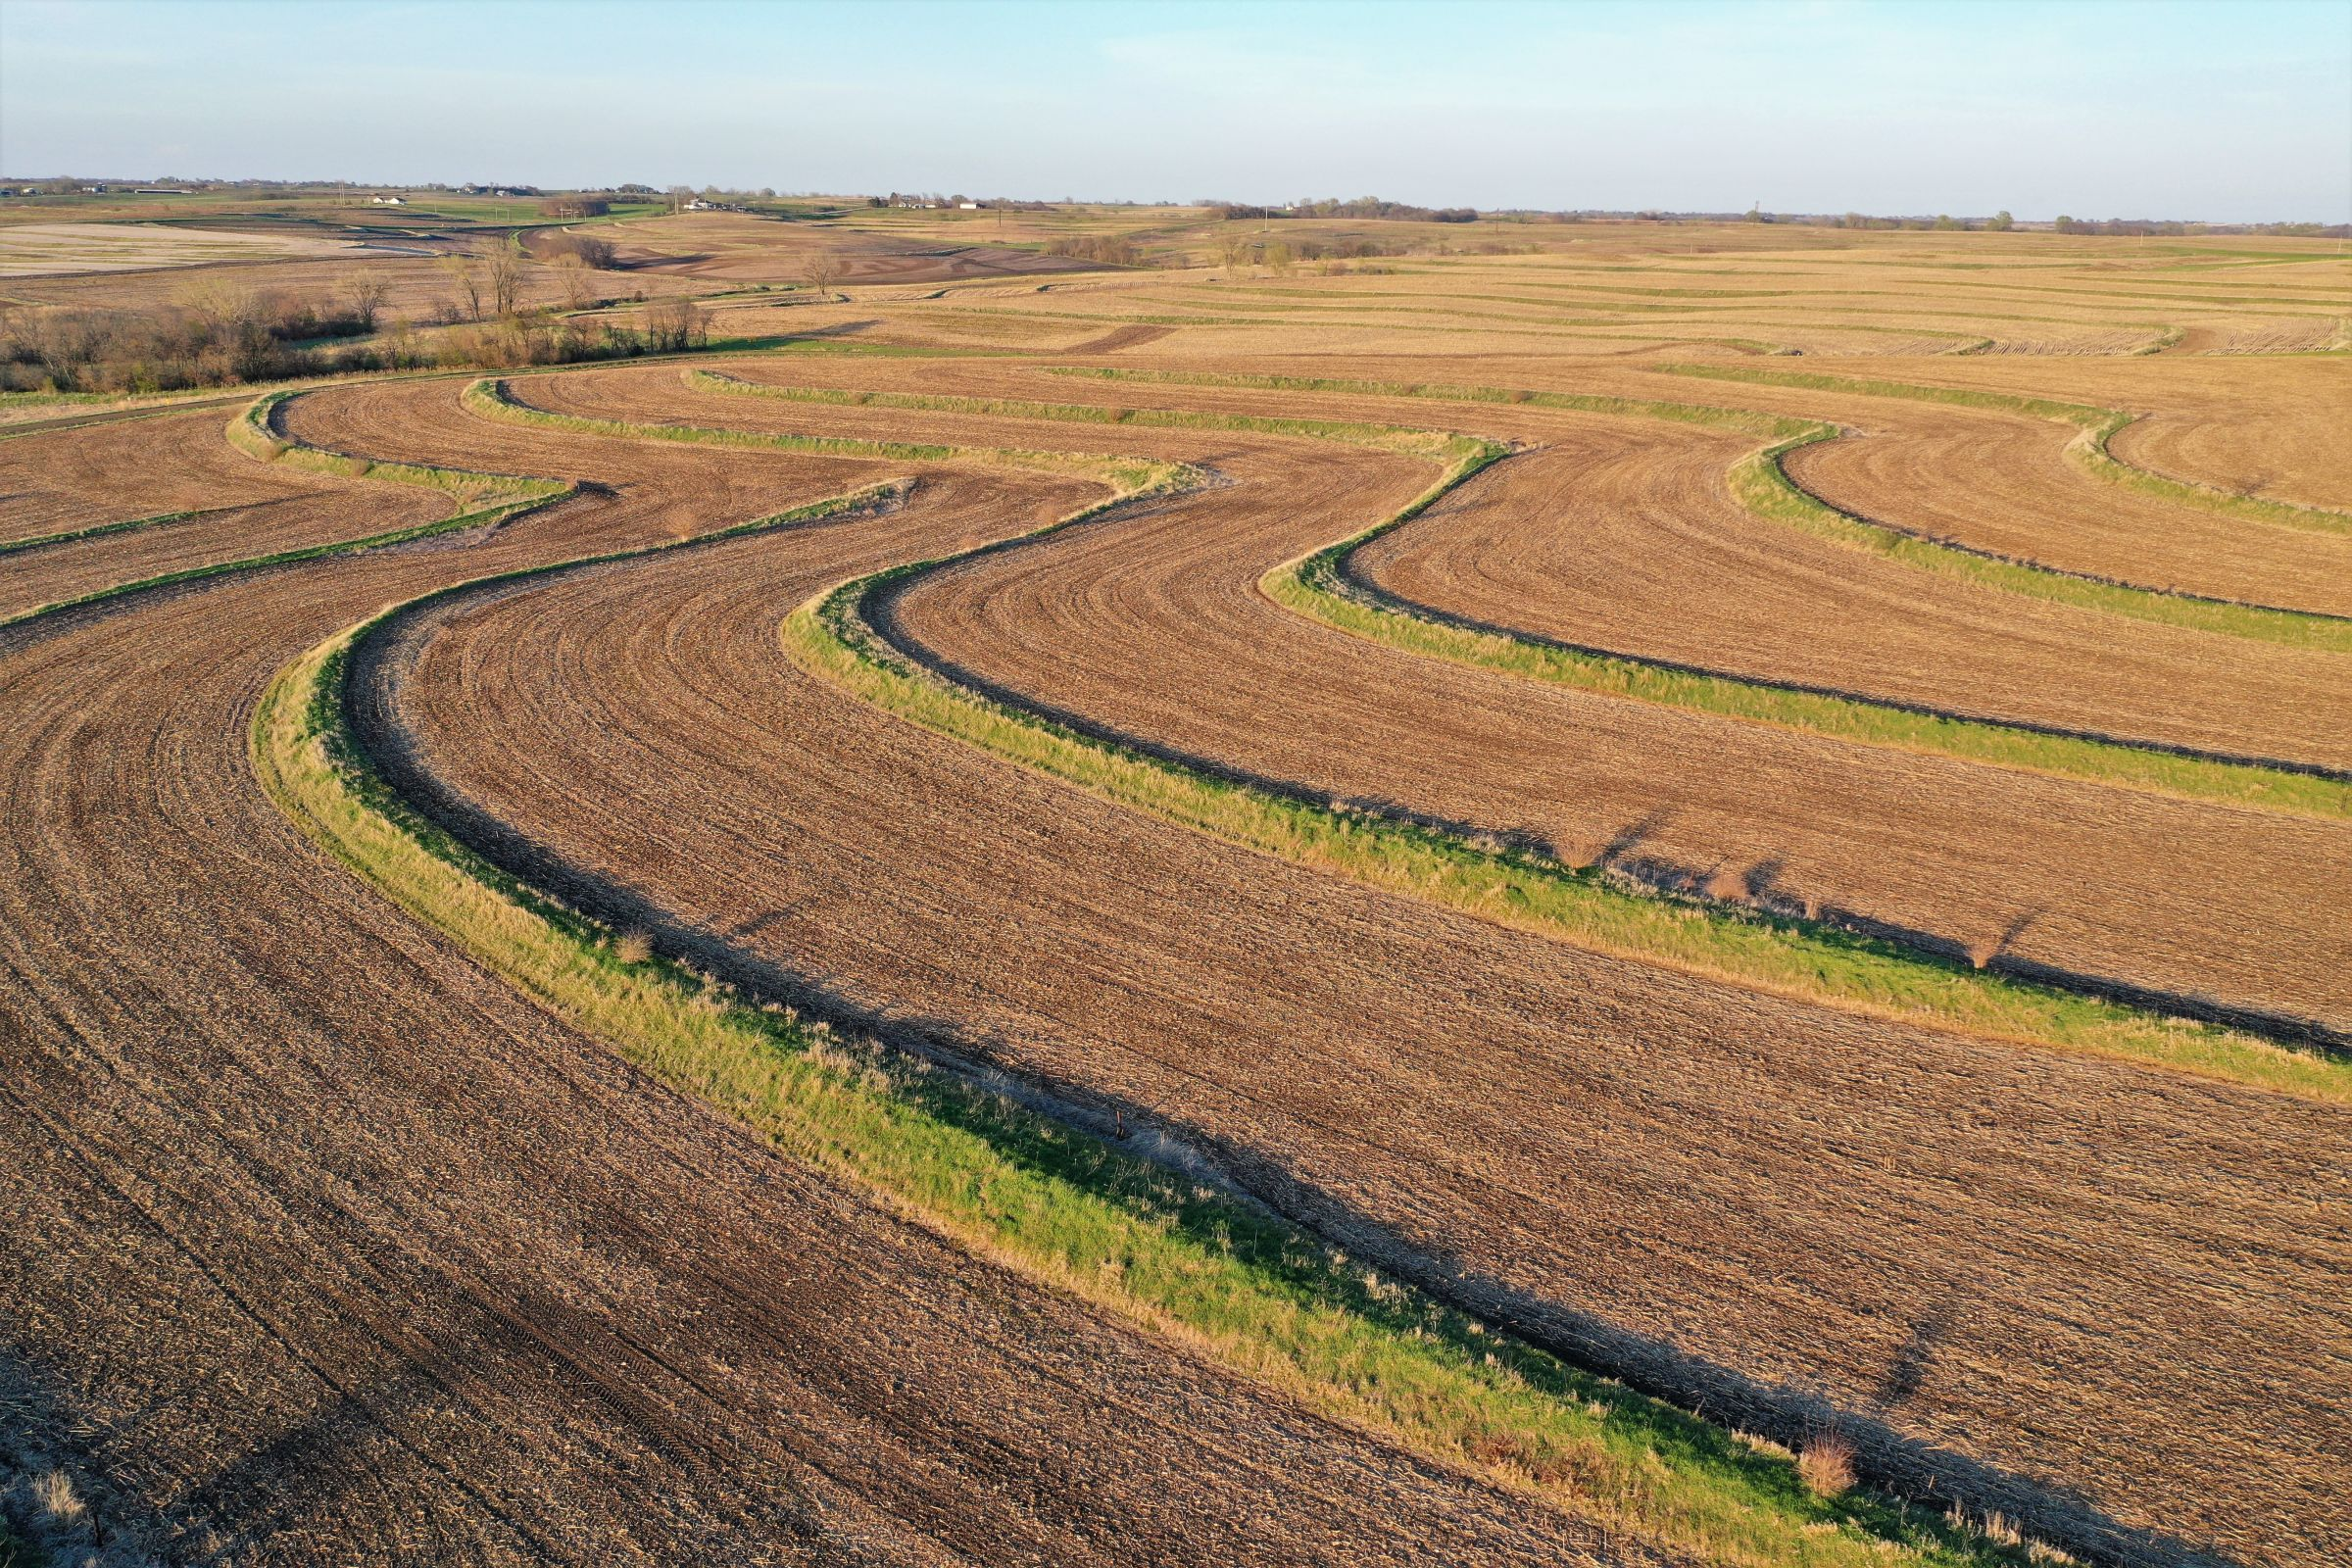 land-page-county-iowa-160-acres-listing-number-14980-1-2020-04-28-172933.jpg